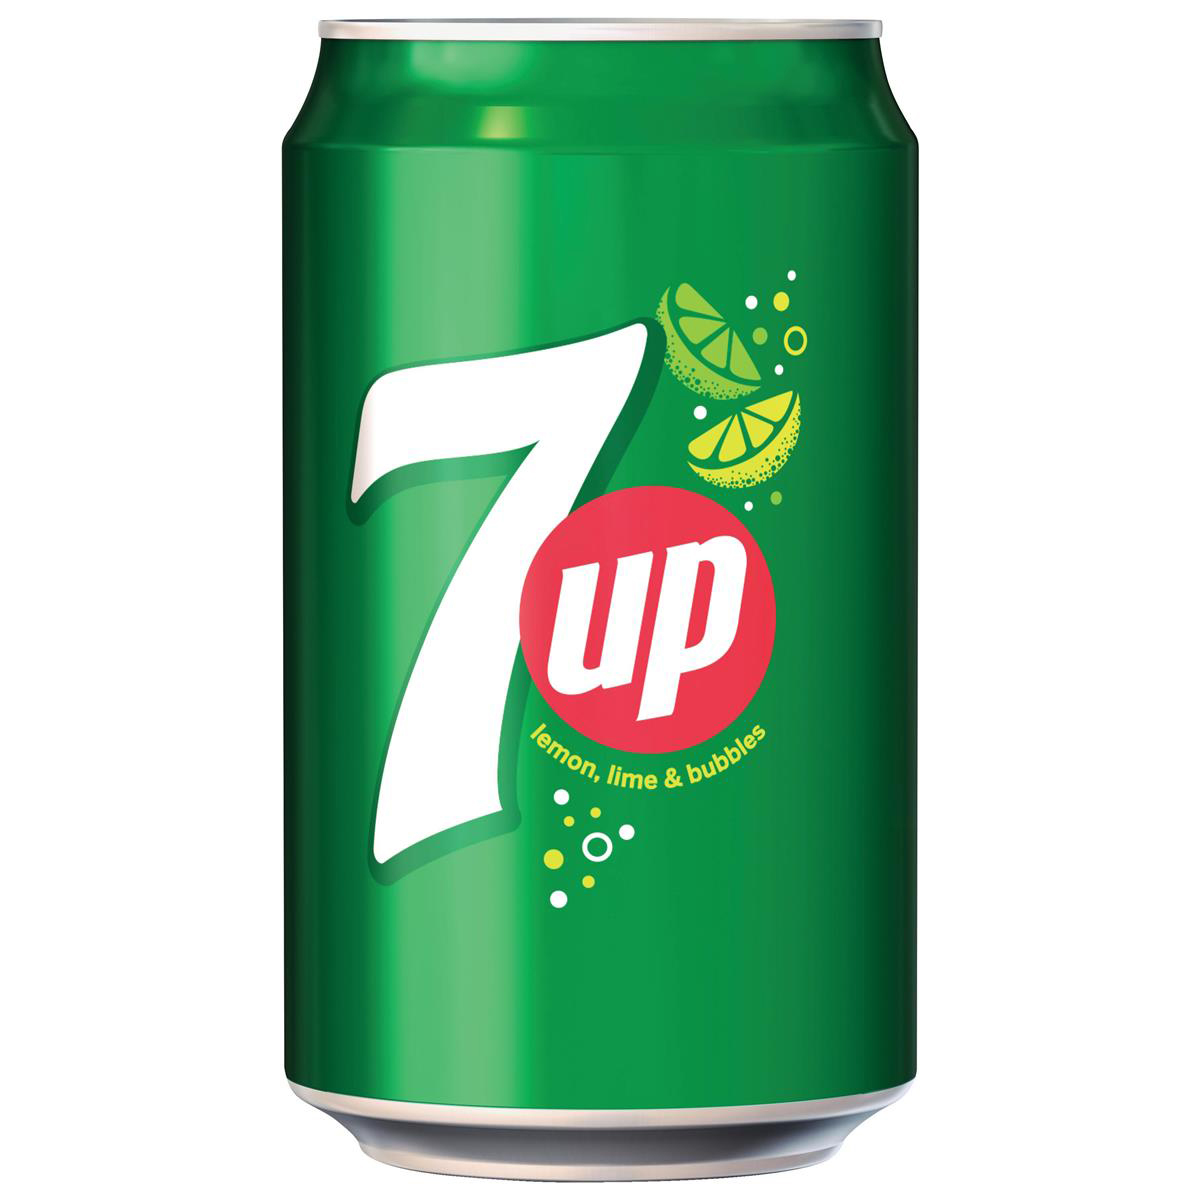 Cold Drinks 7UP Original Lemon and Lime Soft Drink Can 330ml Ref 203388 Pack 24